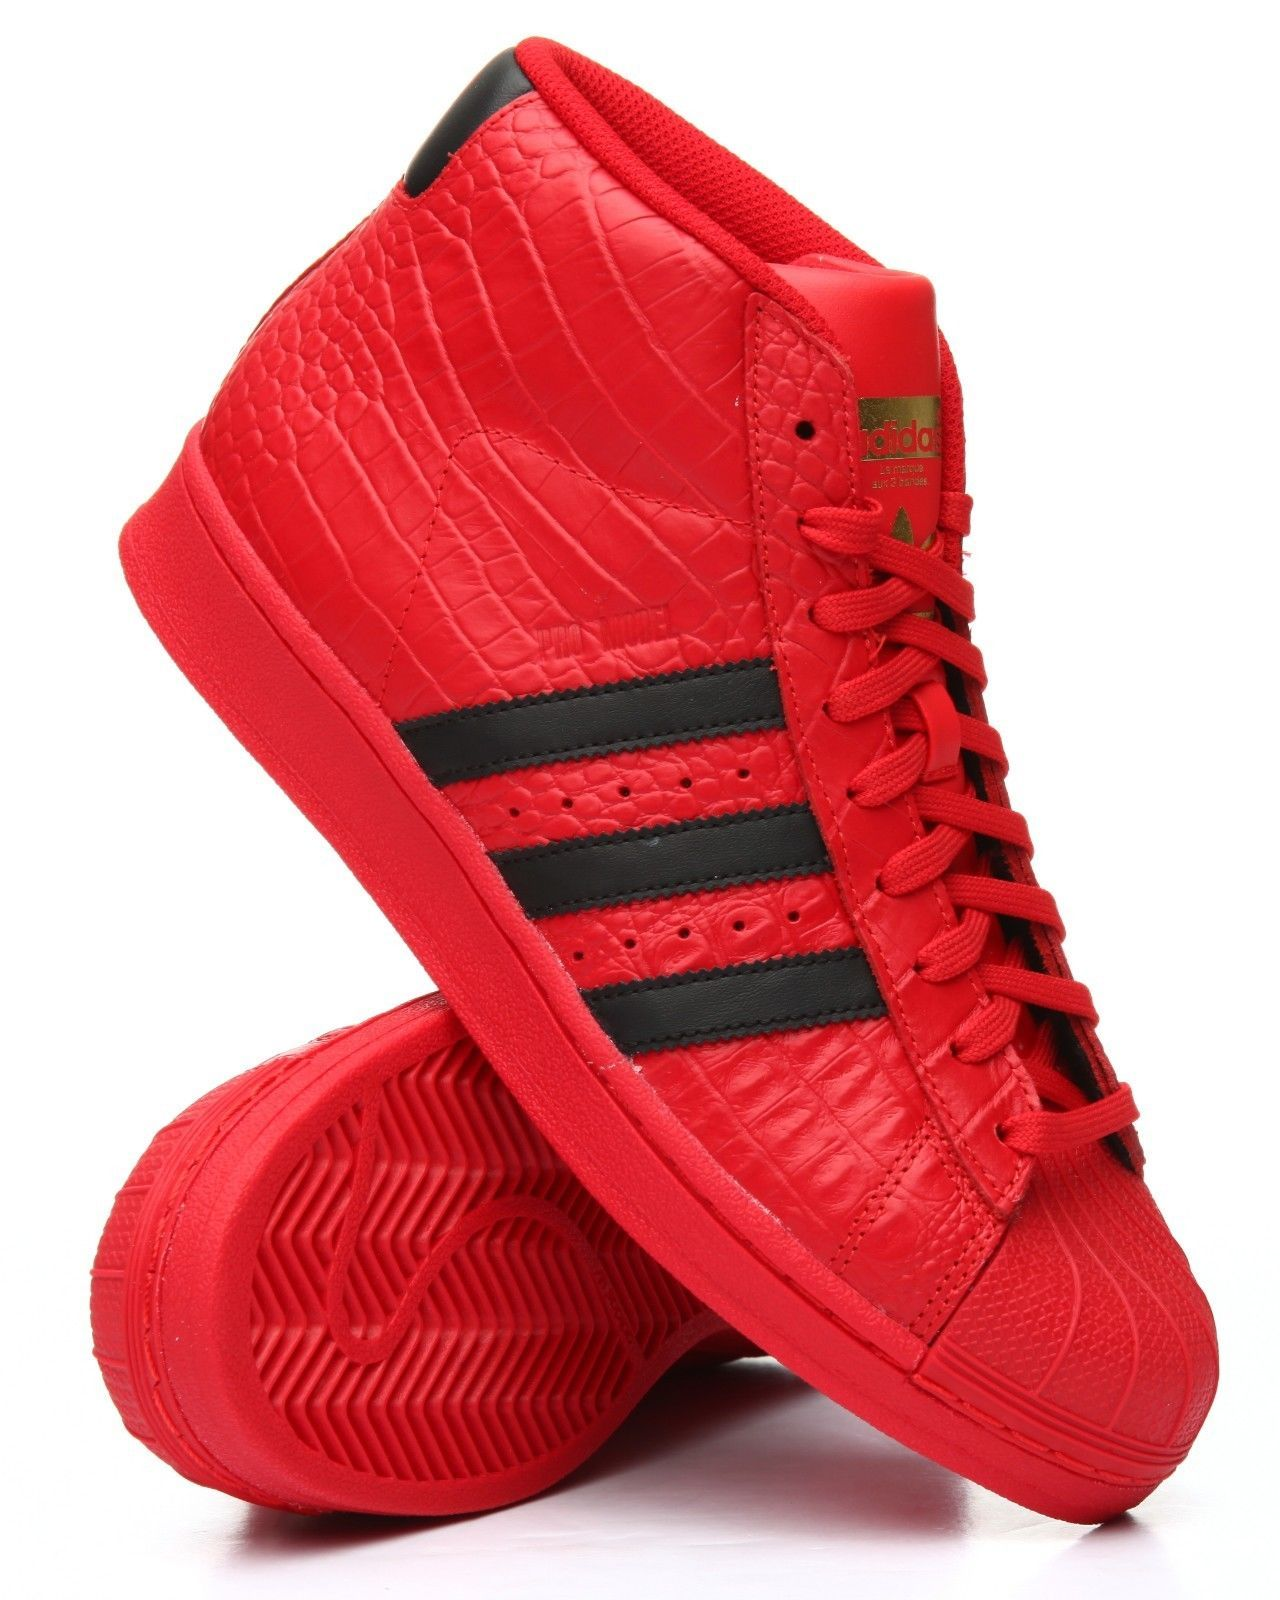 56cdd777a362a NIB MENS ADIDAS ORIGINAL PRO MODEL RED BLACK GOLD BASKETBALL SHOES CQ0873